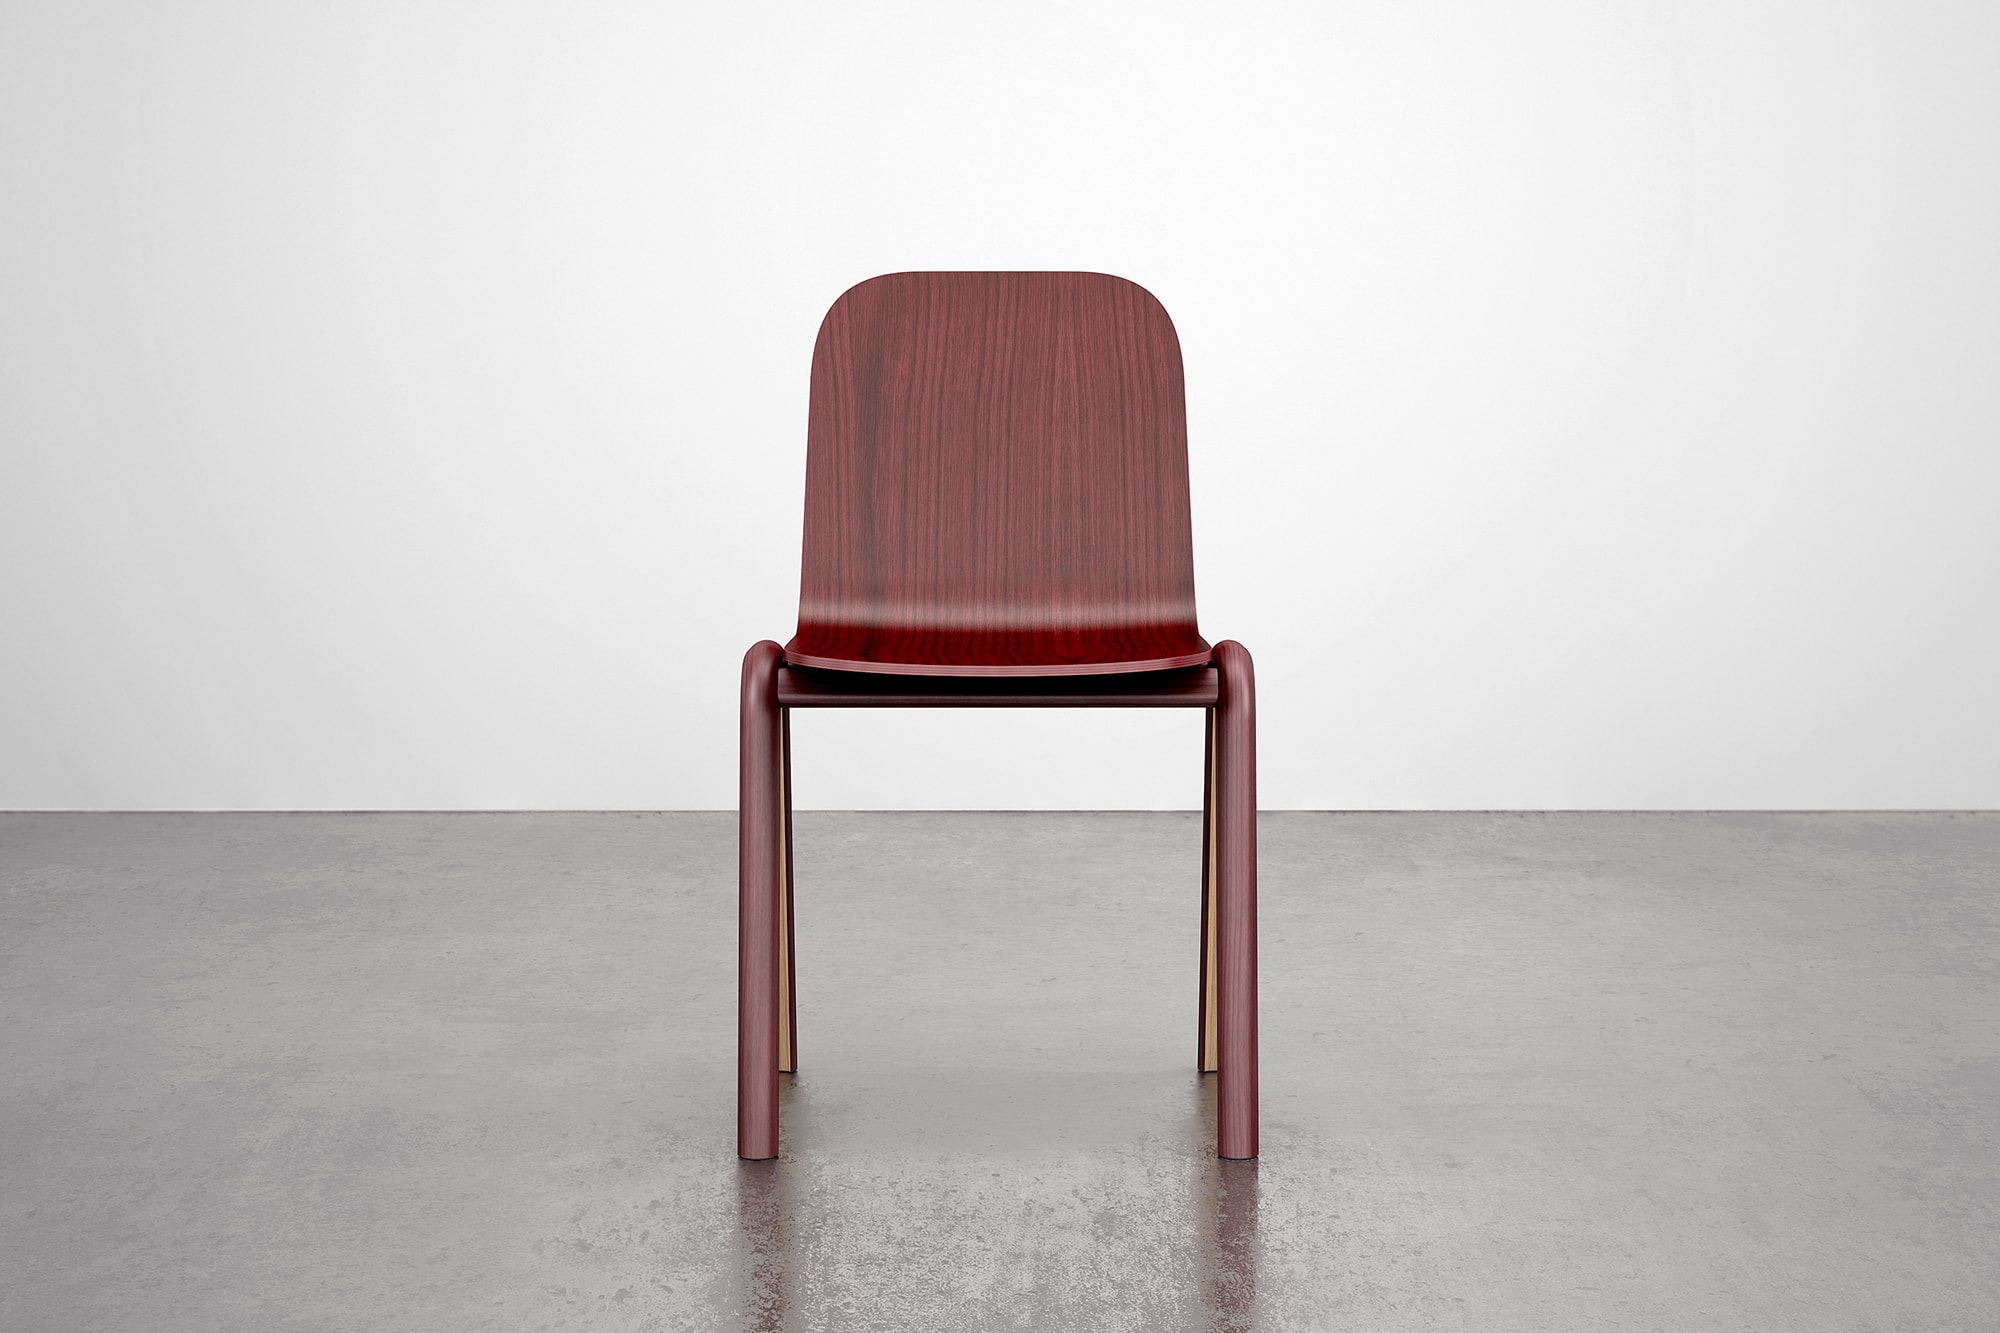 Front view of Burgundy Chair. The chair is made using steam bent wood.